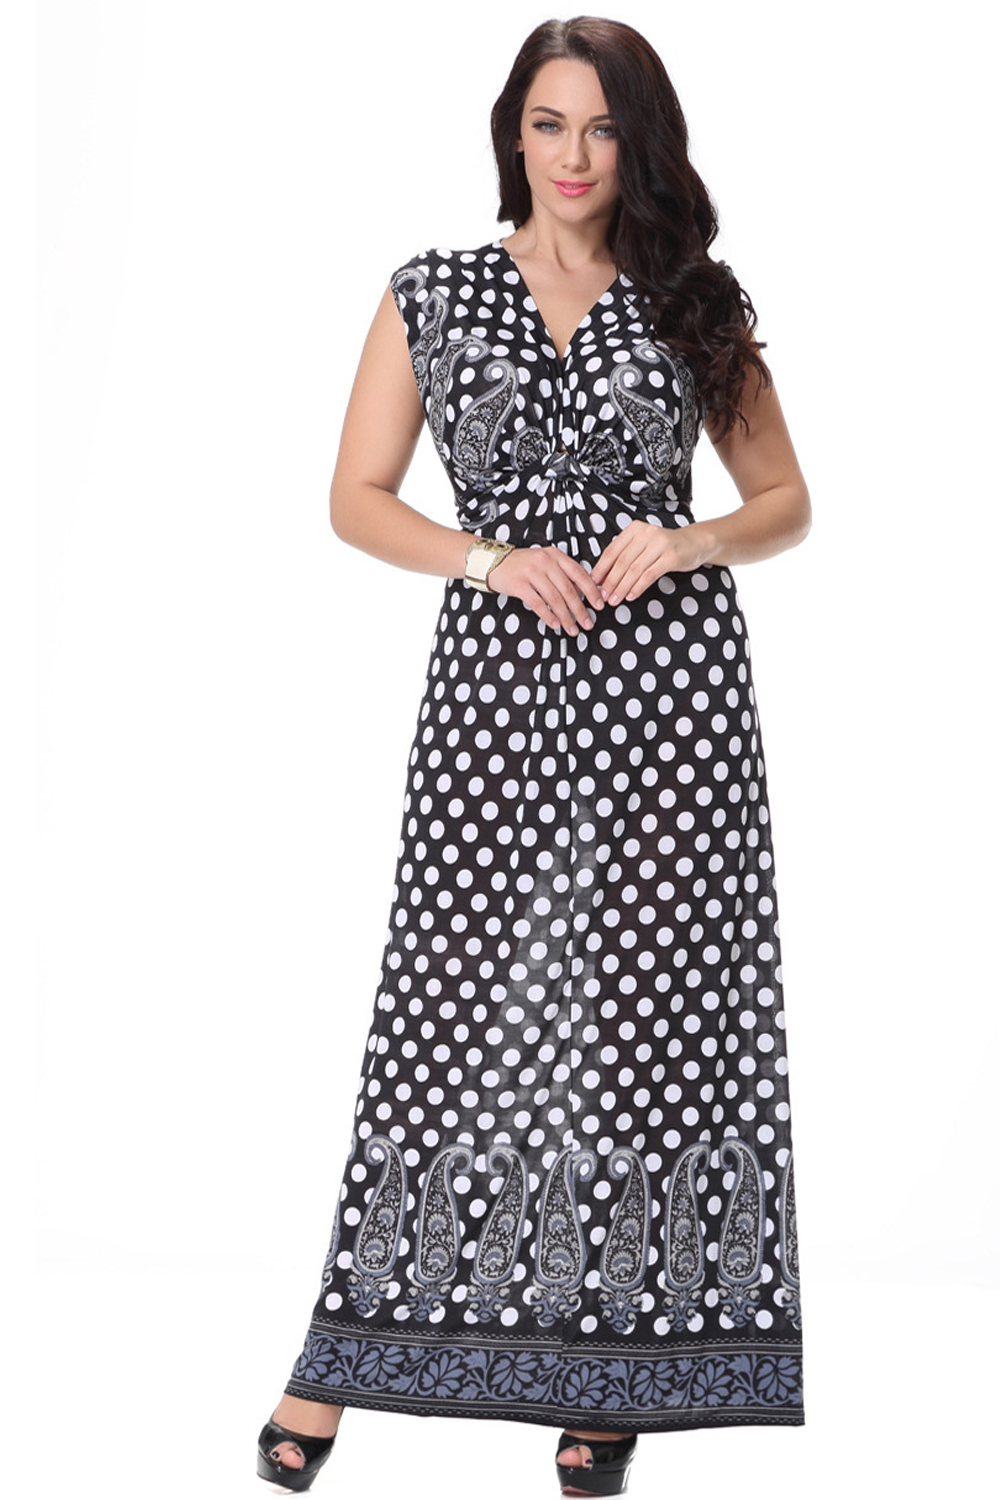 9fc98f1d014 UNOMATCH WOMEN PLUS SIZE LONG LENGTH POLKA DOTS PRINTED BUNCH DRESS BLACK.  Zoom images